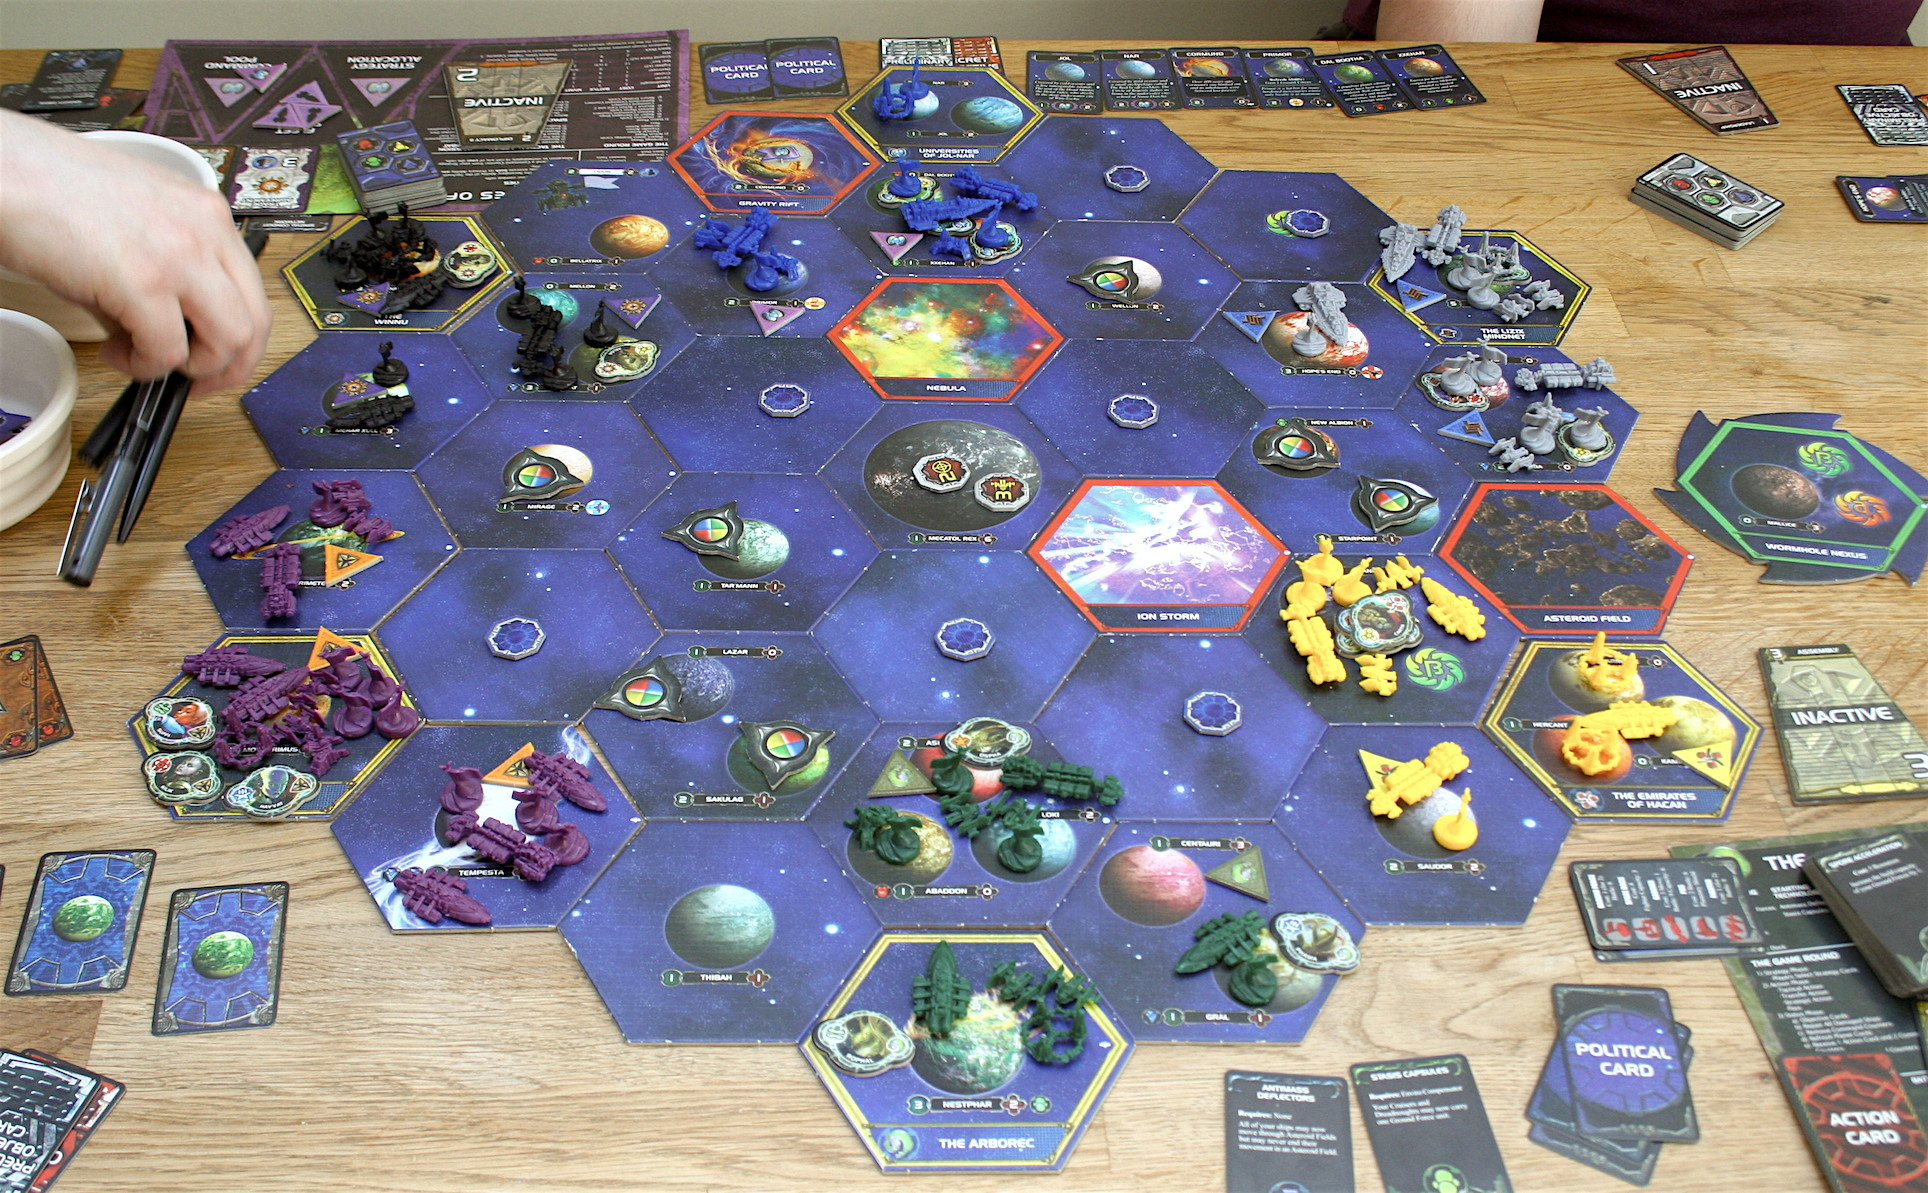 How long will it take to conquer these hexes?